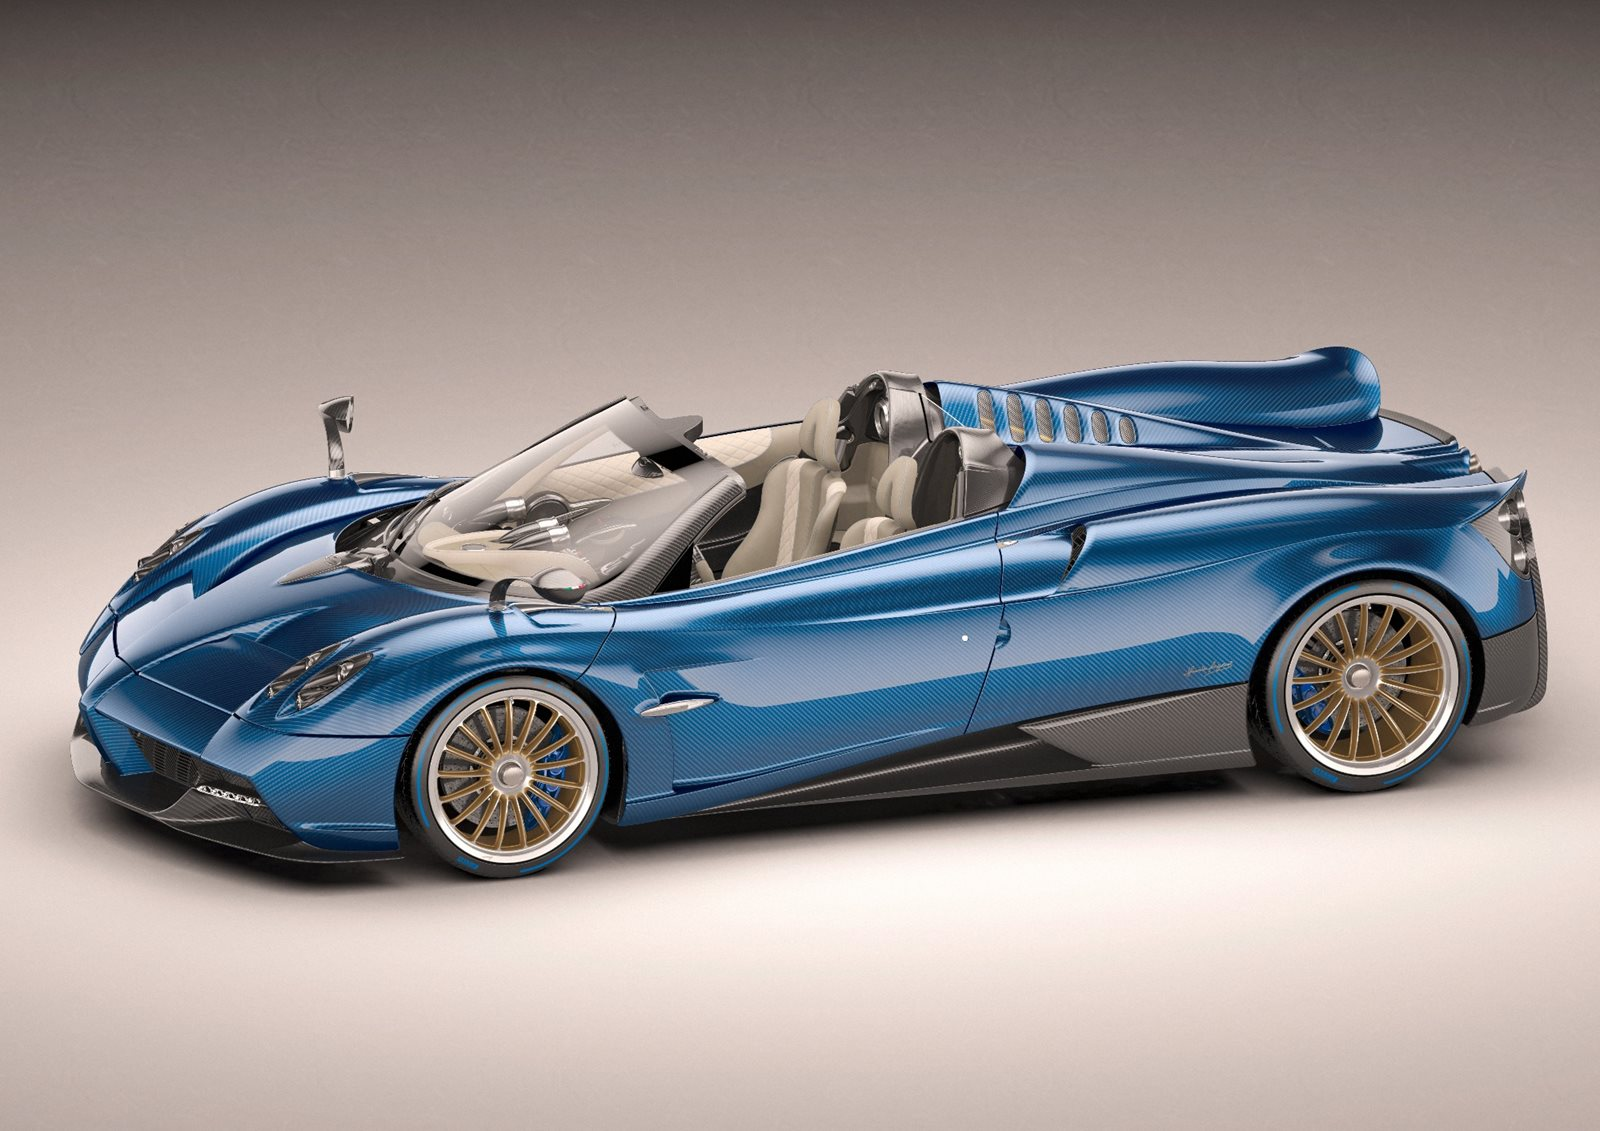 2018 Pagani Huayra Roadster Review, Trims, Specs and Price - CarBuzz